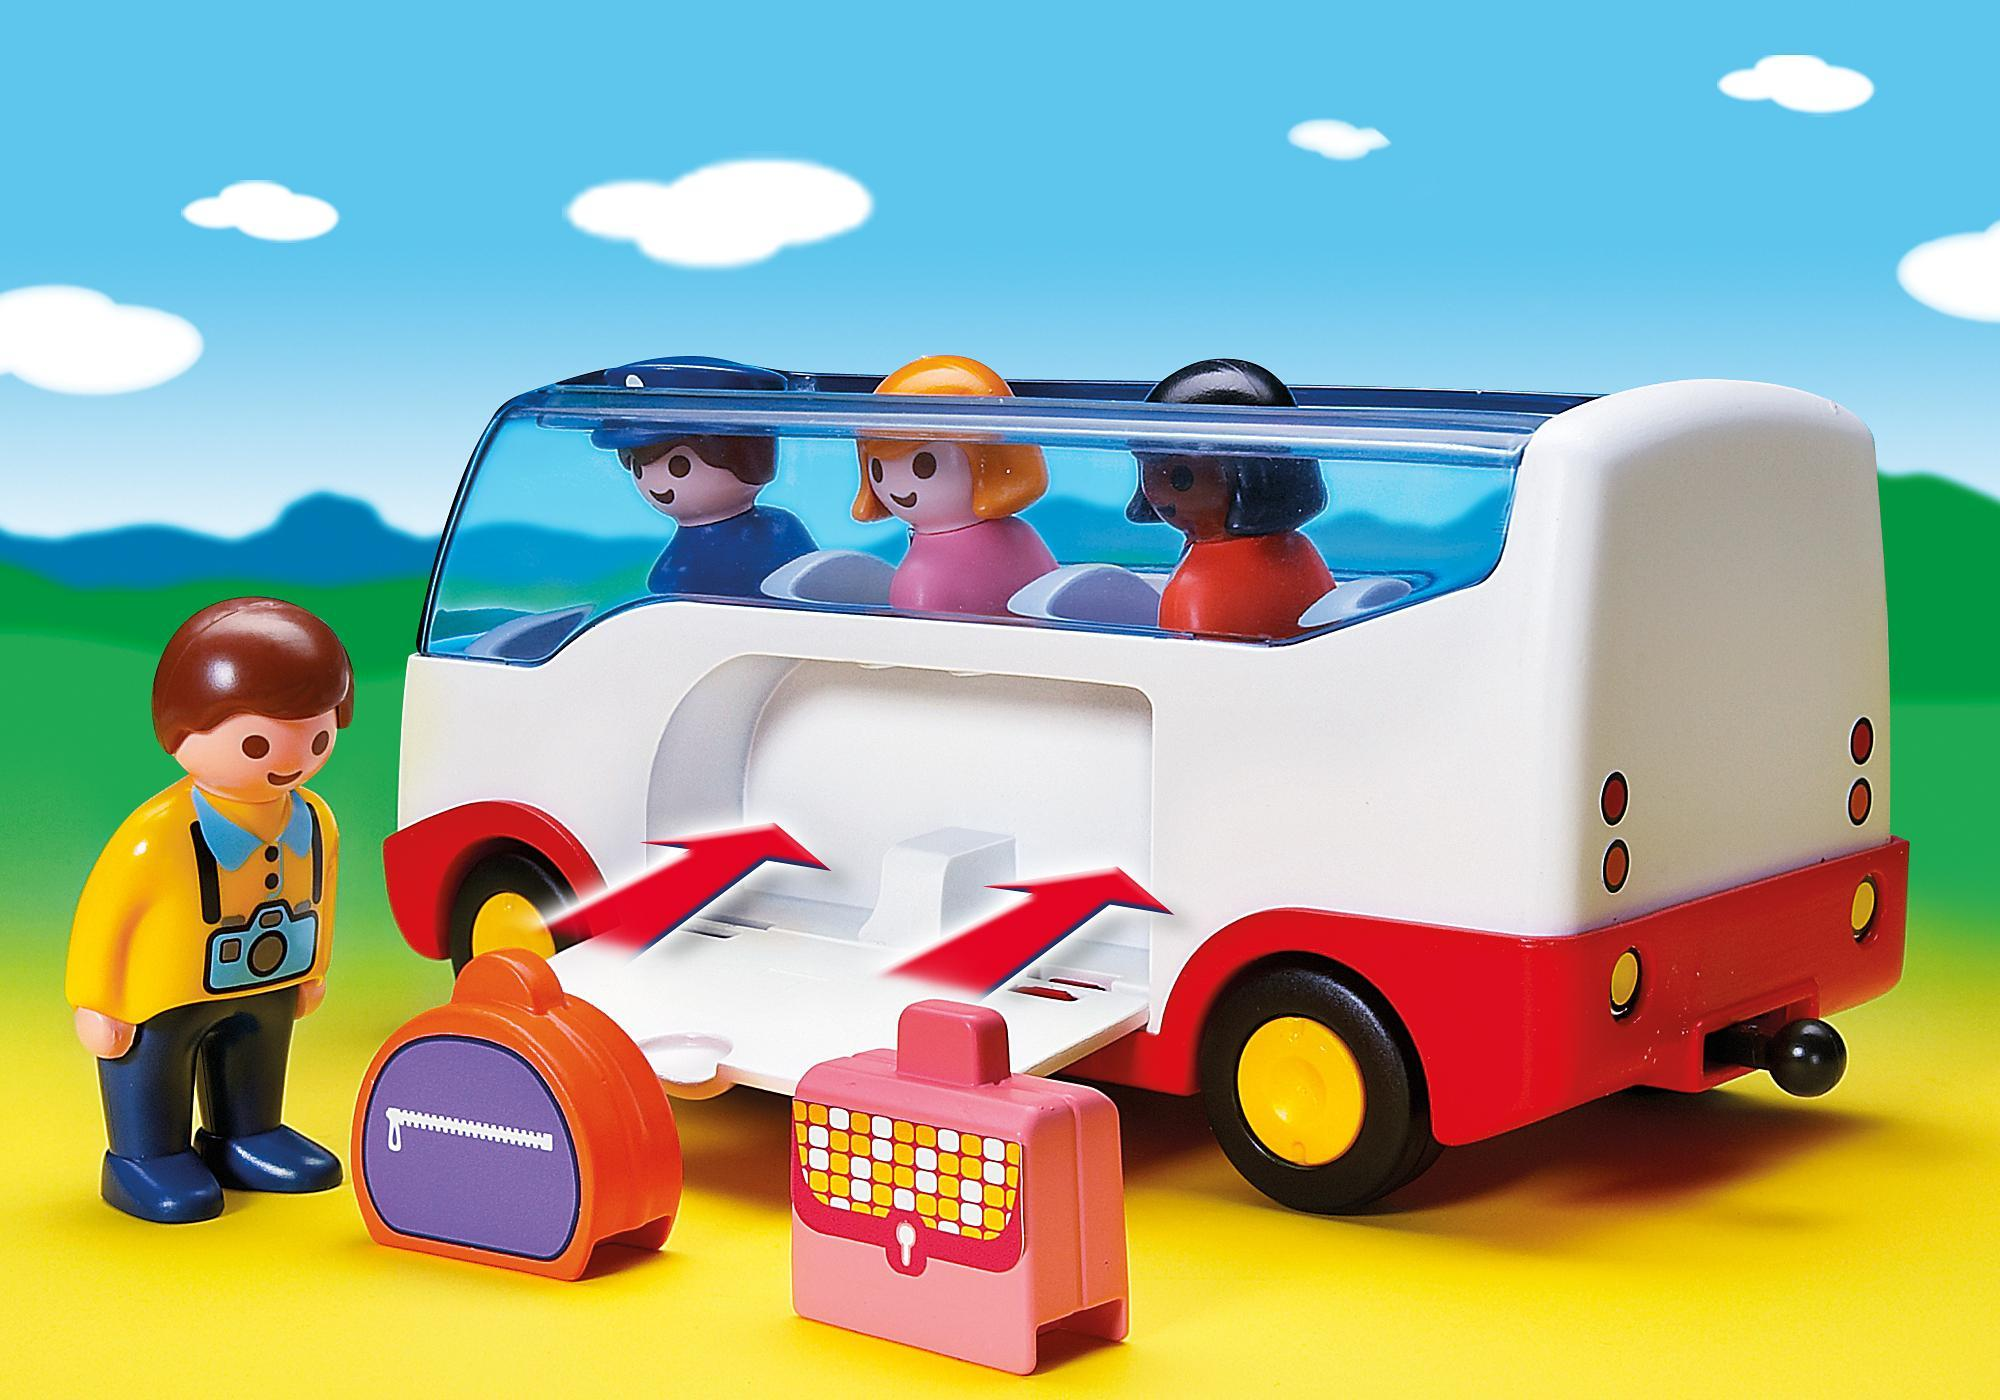 http://media.playmobil.com/i/playmobil/6773_product_extra1/1.2.3 Airport Shuttle Bus